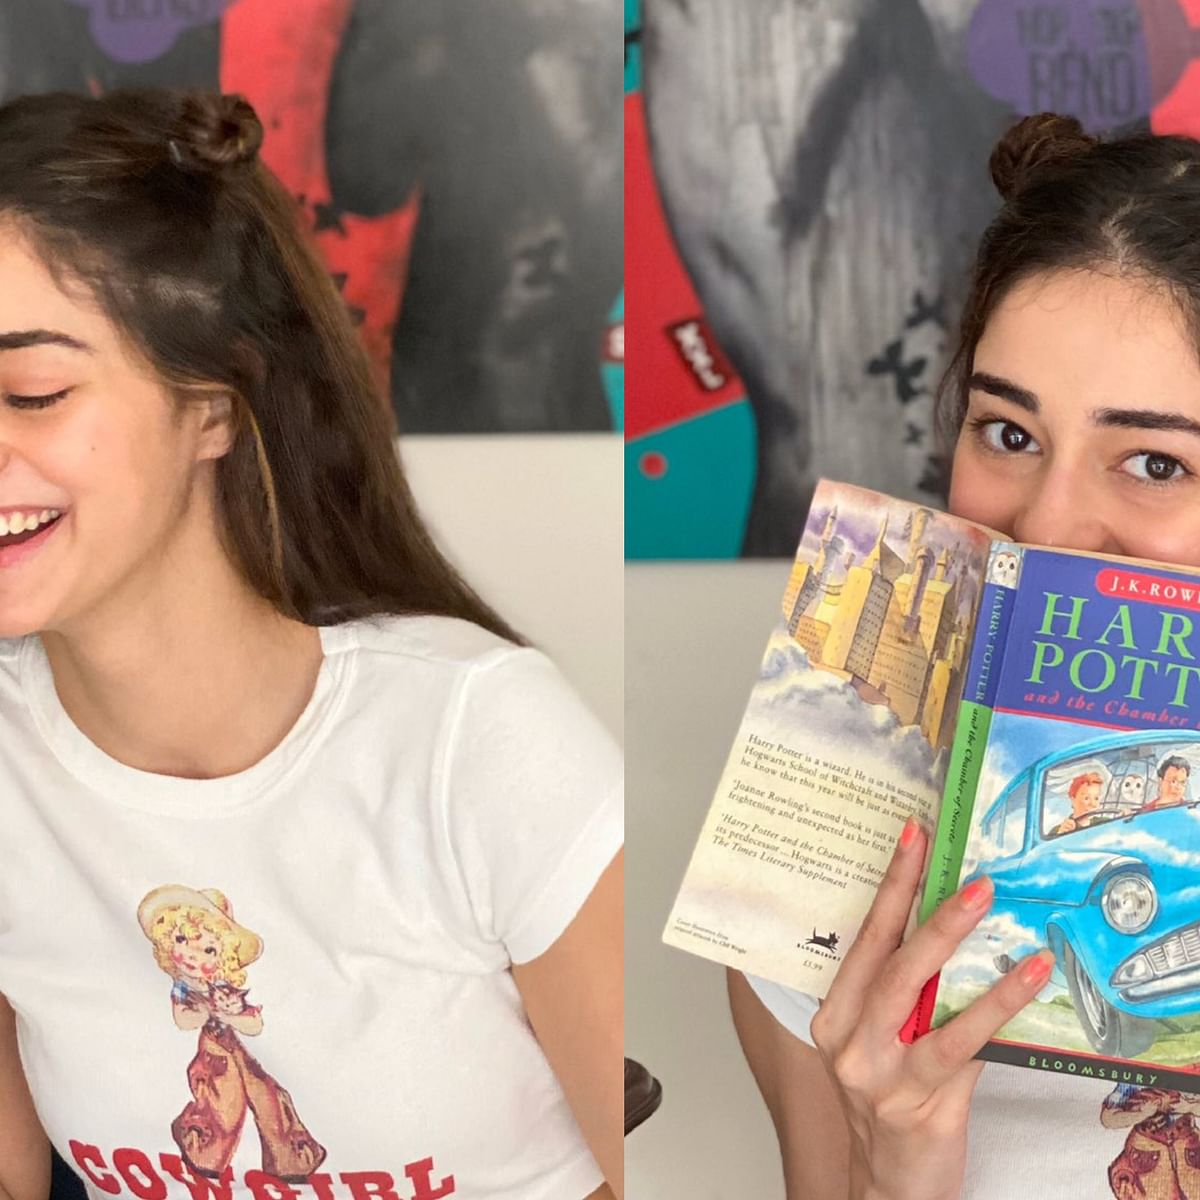 'Worst time to be holding a Harry Potter book': Ananya Panday gets trolled for her latest magazine cover